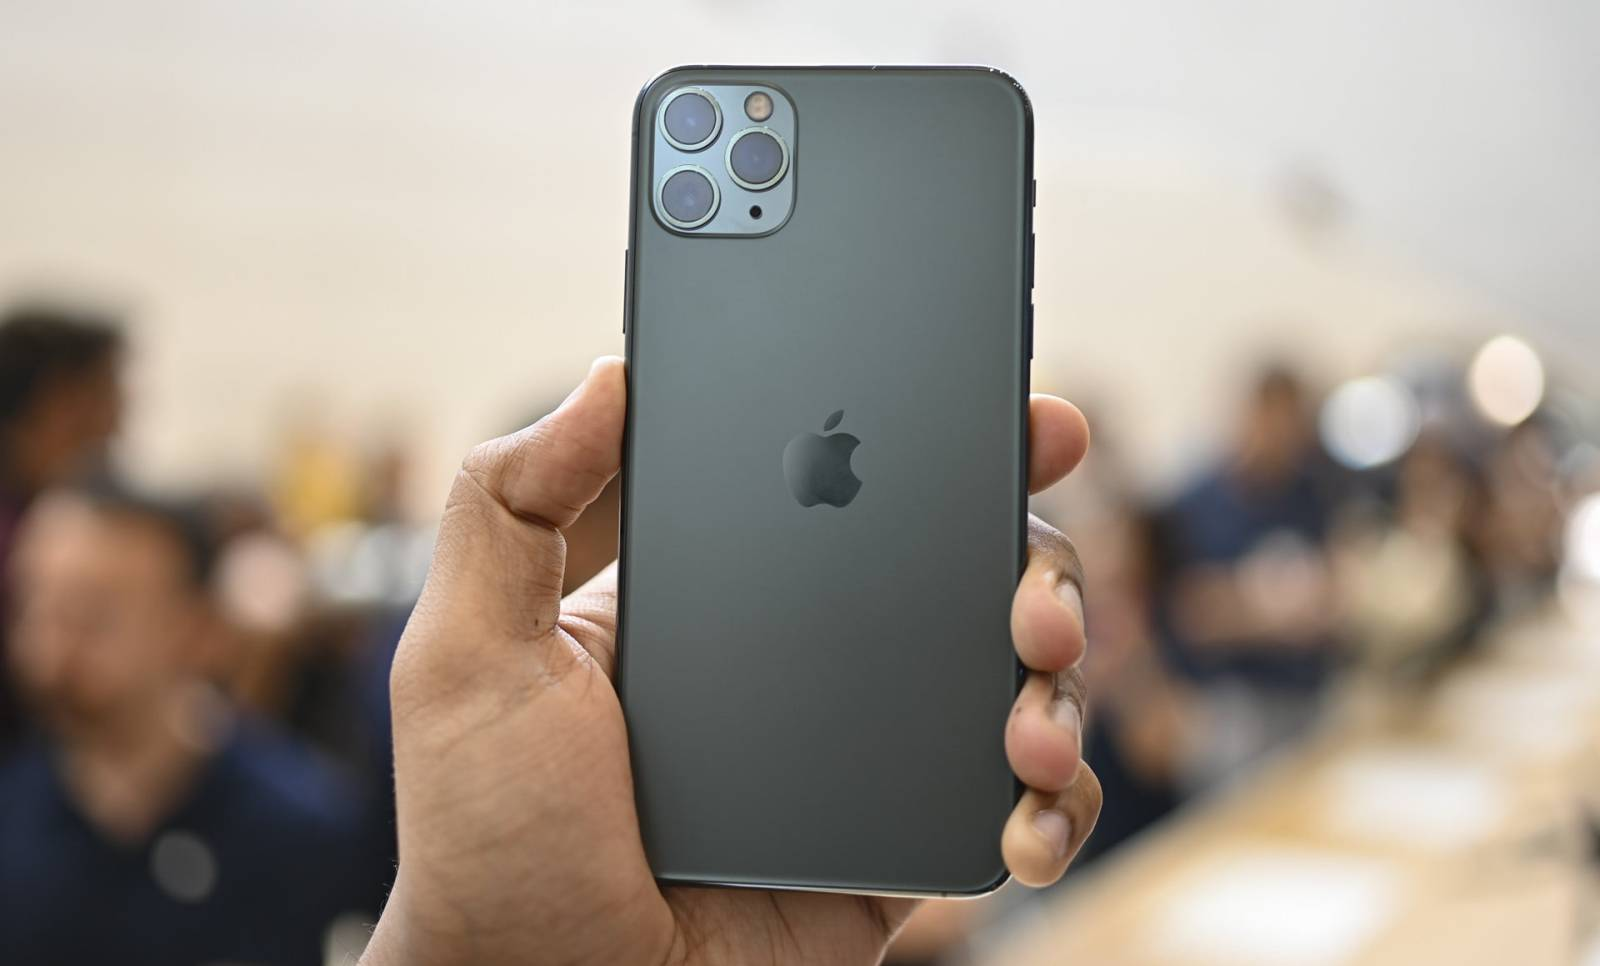 iphone 11 muncesti romania cumpara